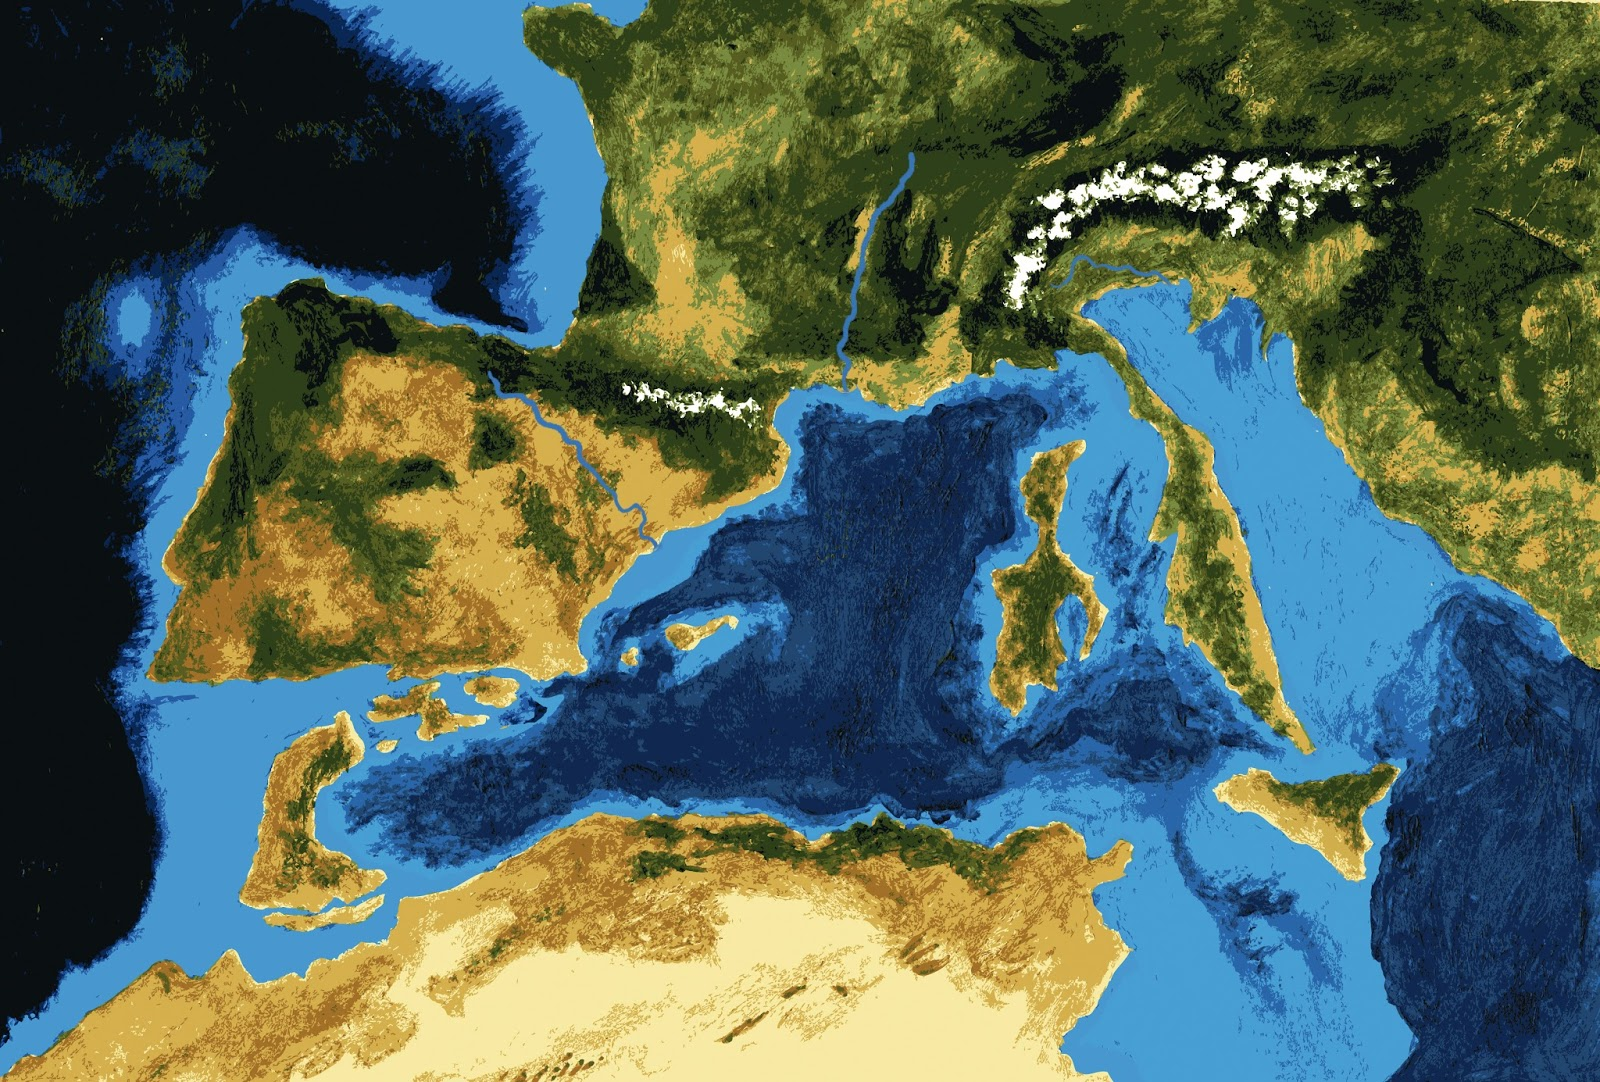 Messinian salinity crisis & Zanclean Flood image series (6.5 million years ago)